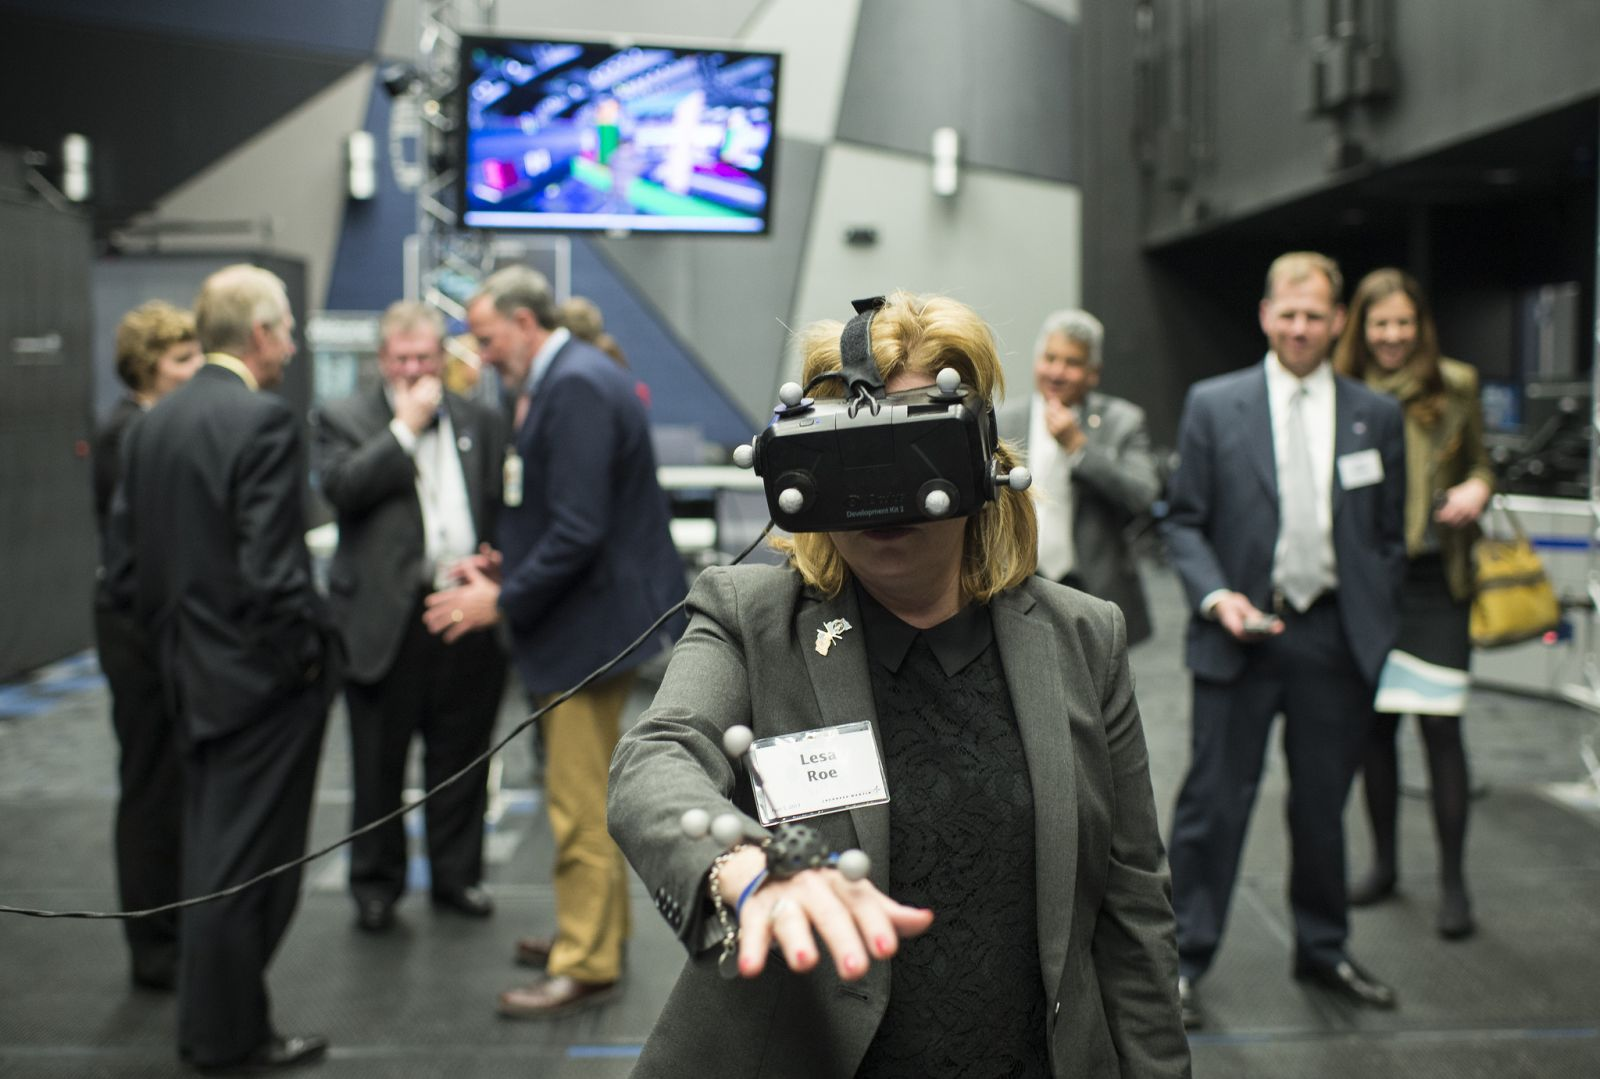 Lesa Roe using a virtual reality headset